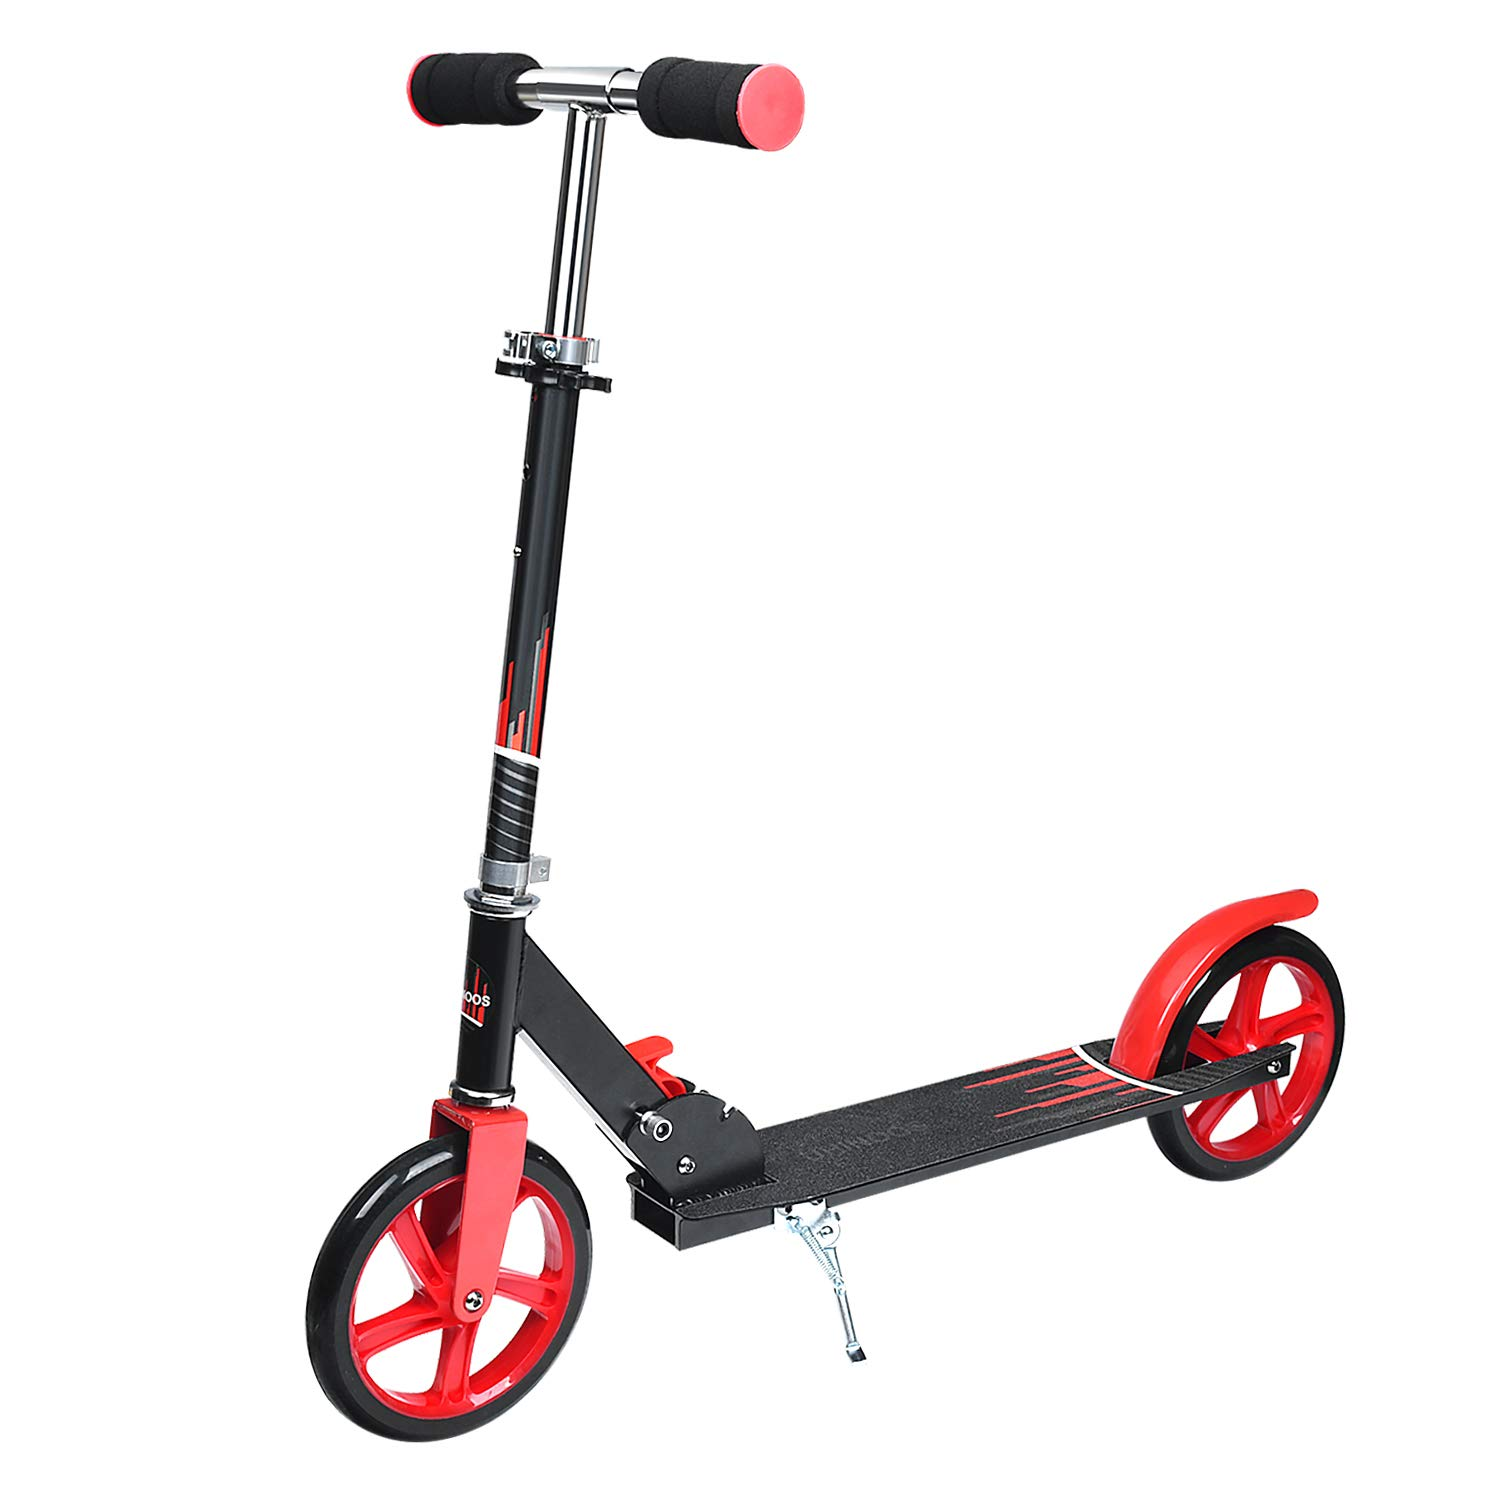 UHINOOS Adults Kick Scooter 200MM with Kickstand-Big Wheels Kids Scooter with Easy Folding System for Teenager (Black and red) by UHINOOS